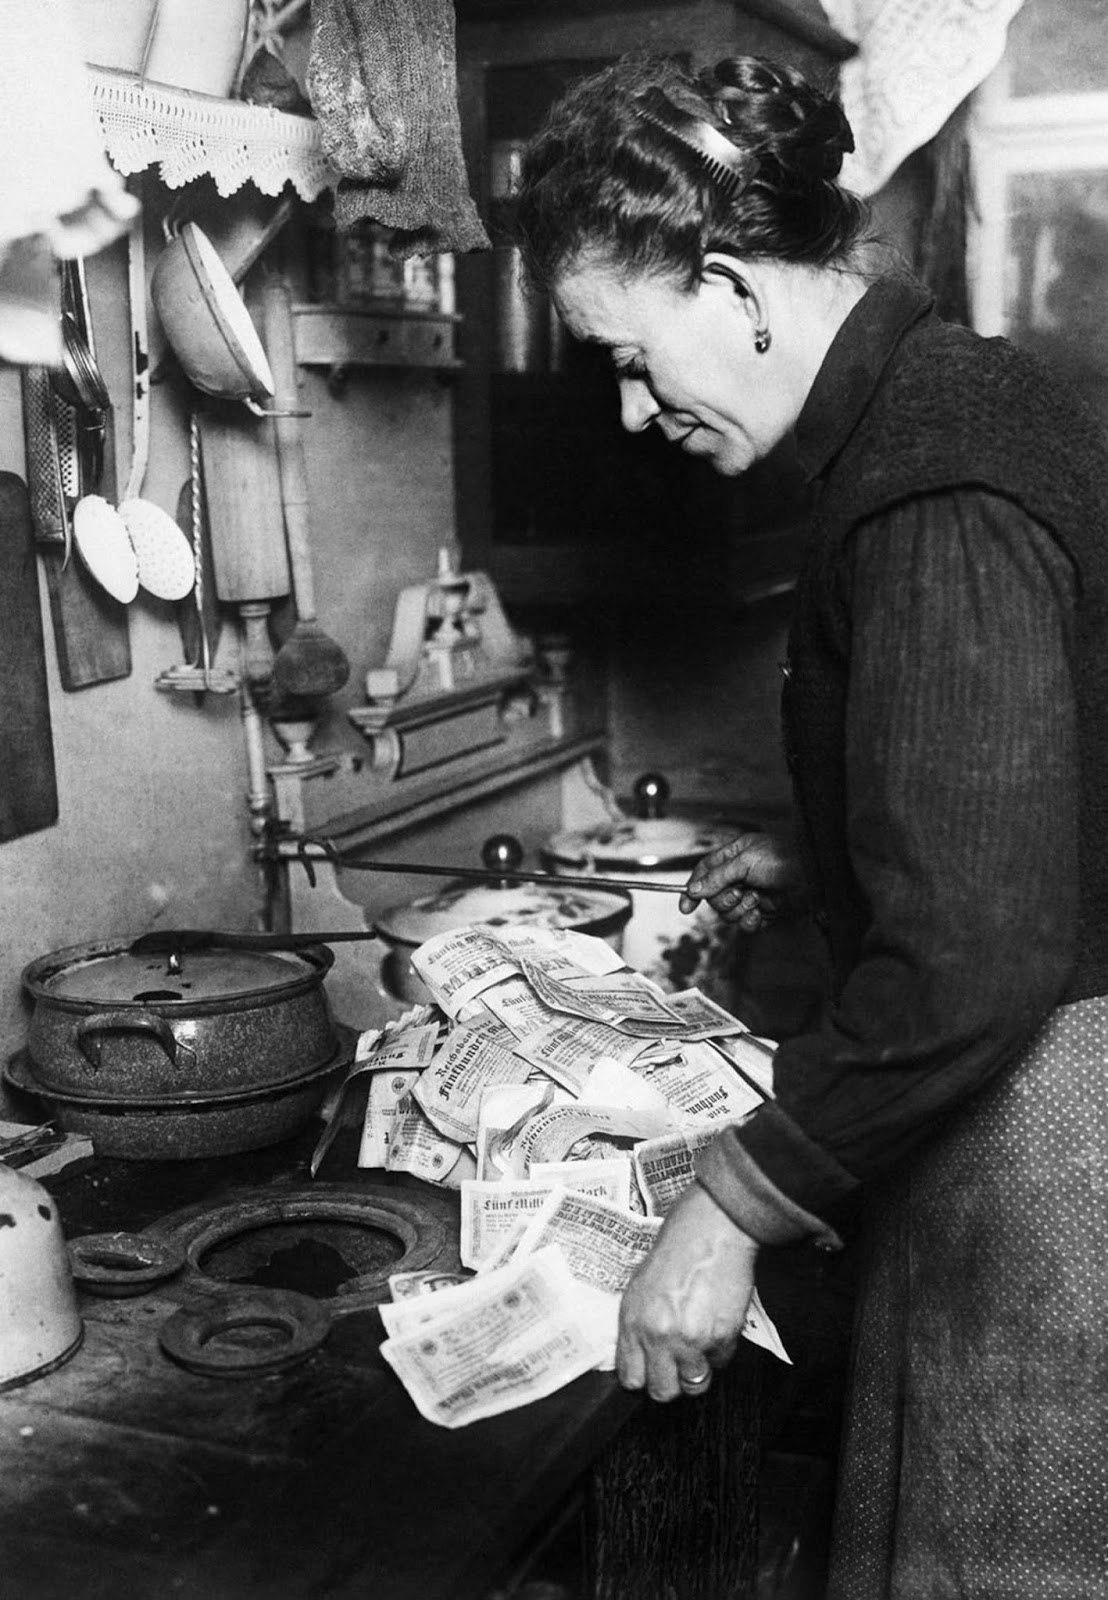 A woman uses banknotes to light her stove. 1923.